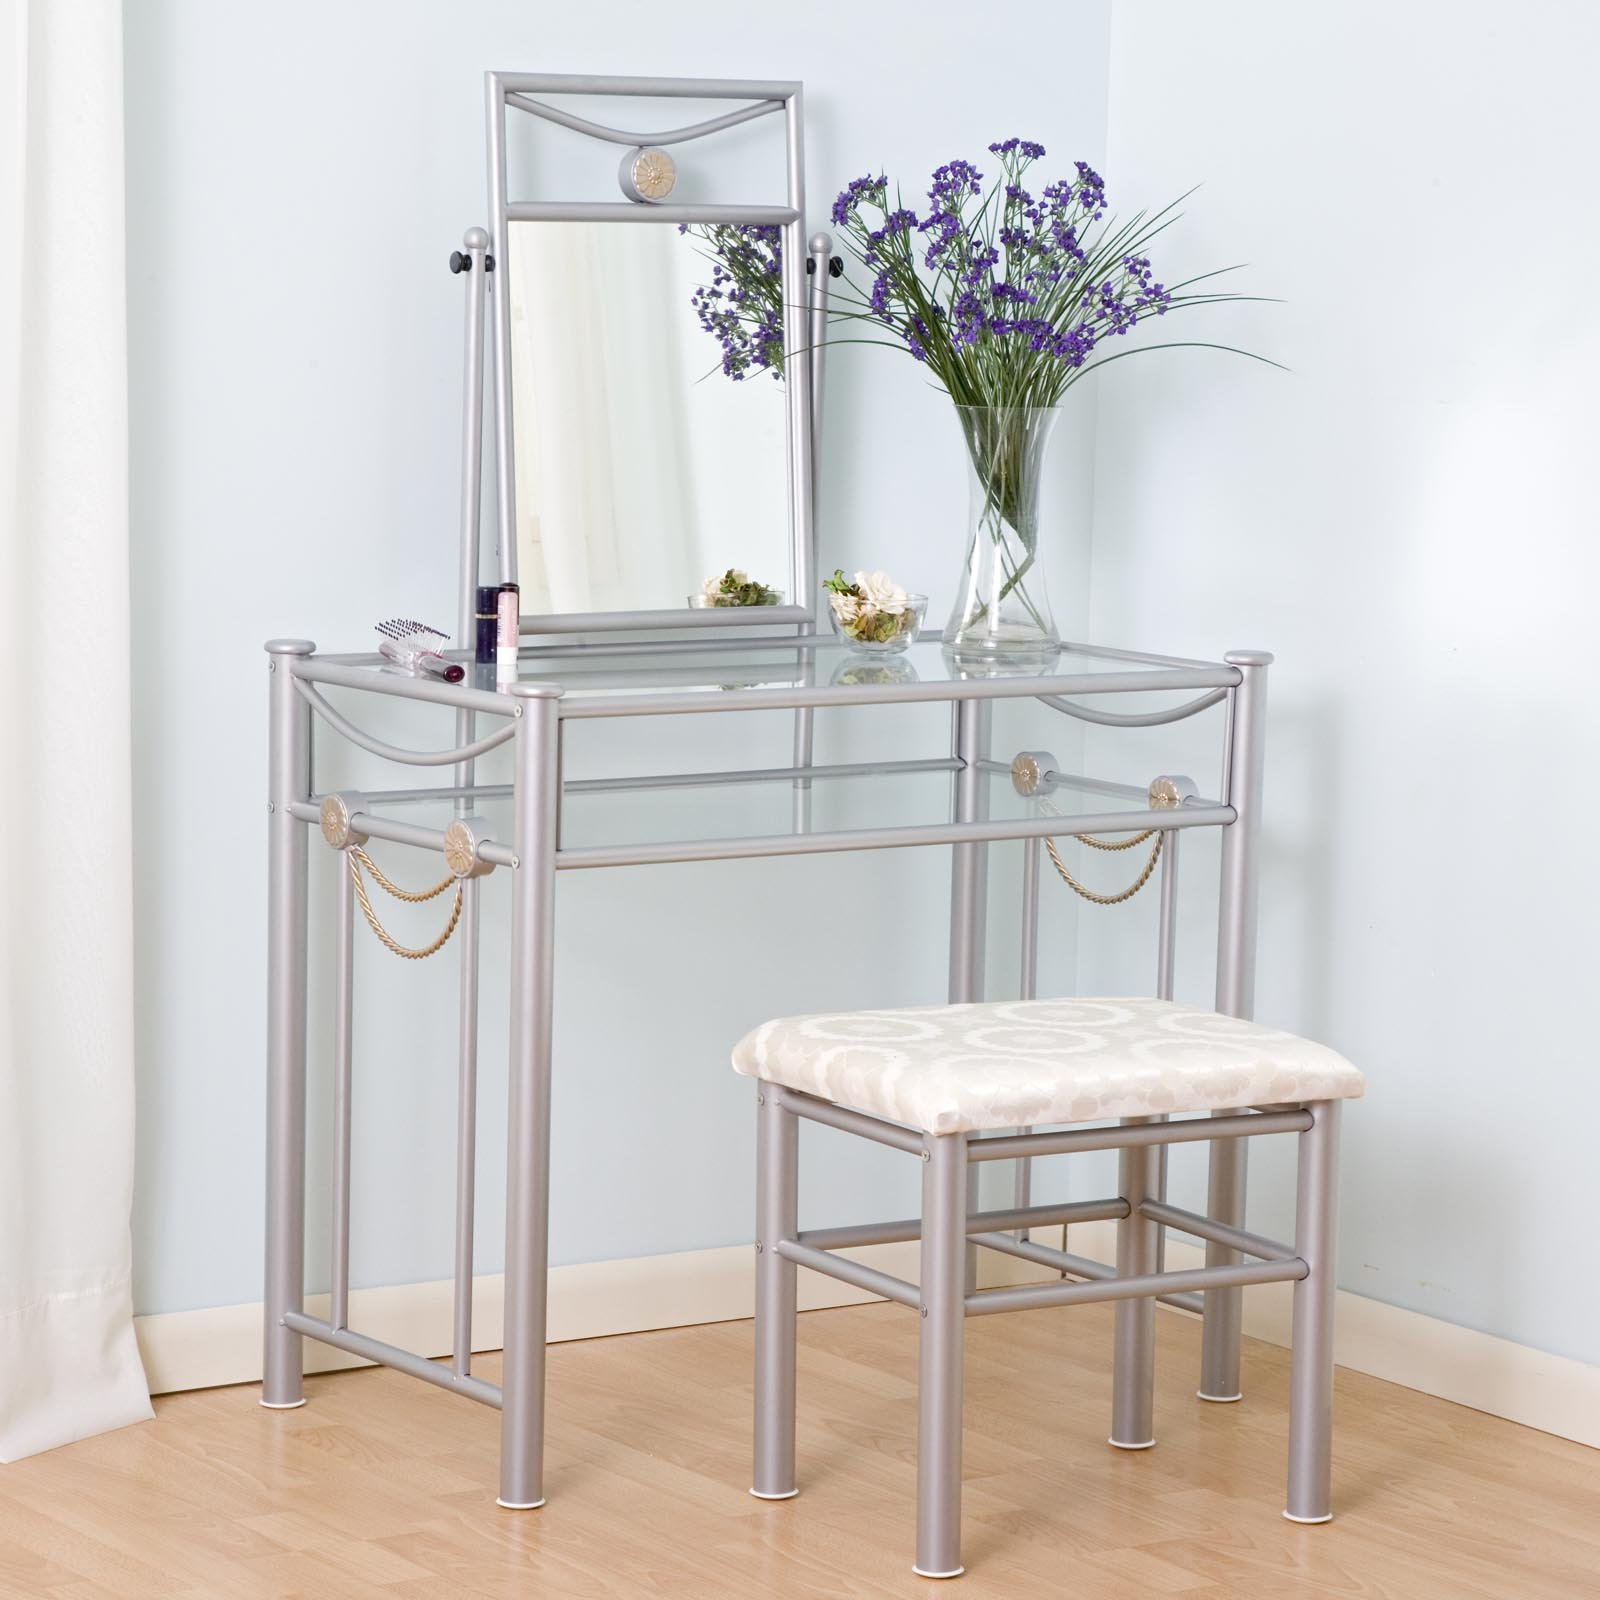 Modern home interior design make up table design ideas for Small mirrored dressing table set